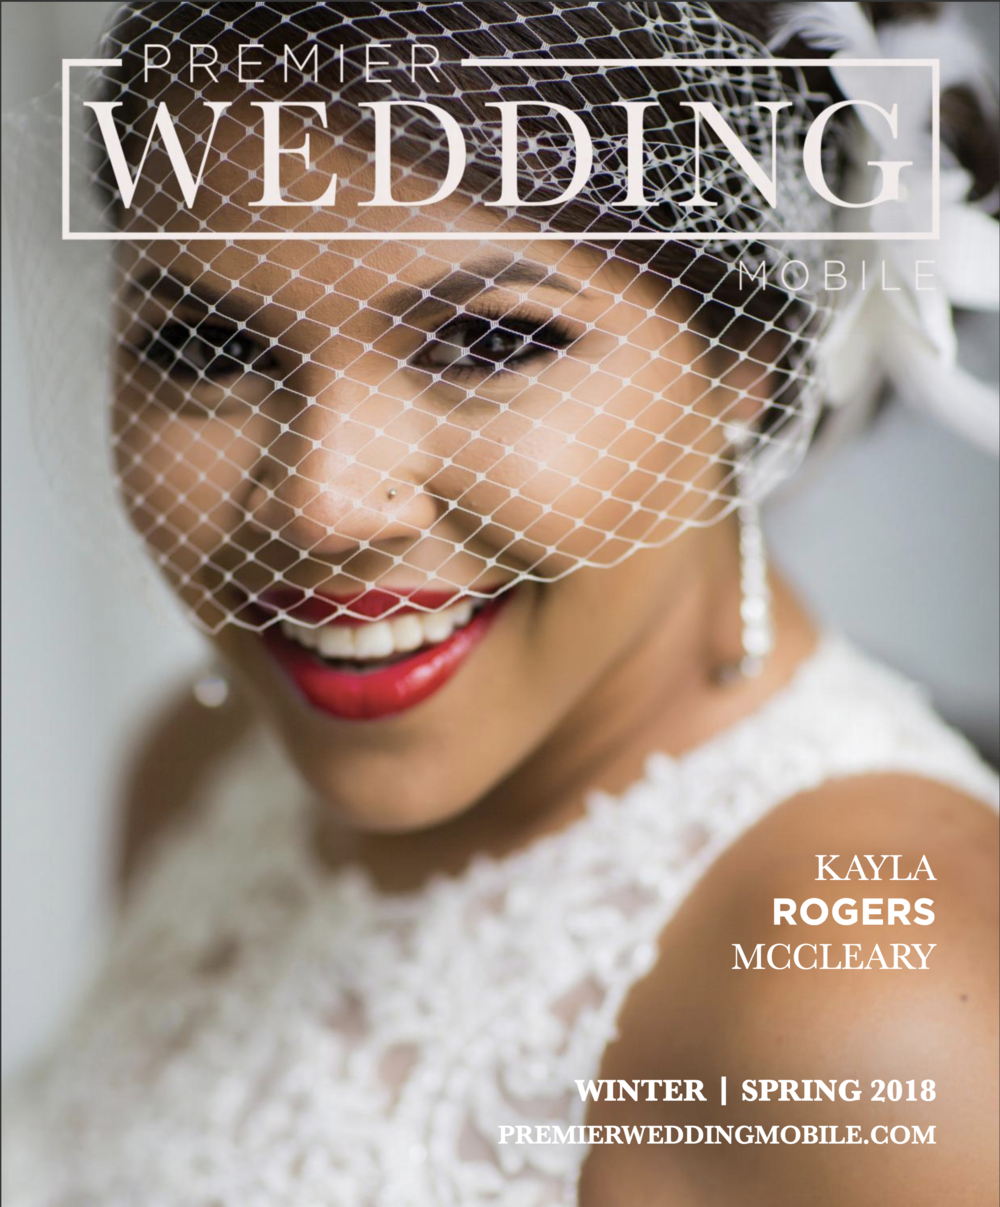 Premier Wedding Magazine (Cover)